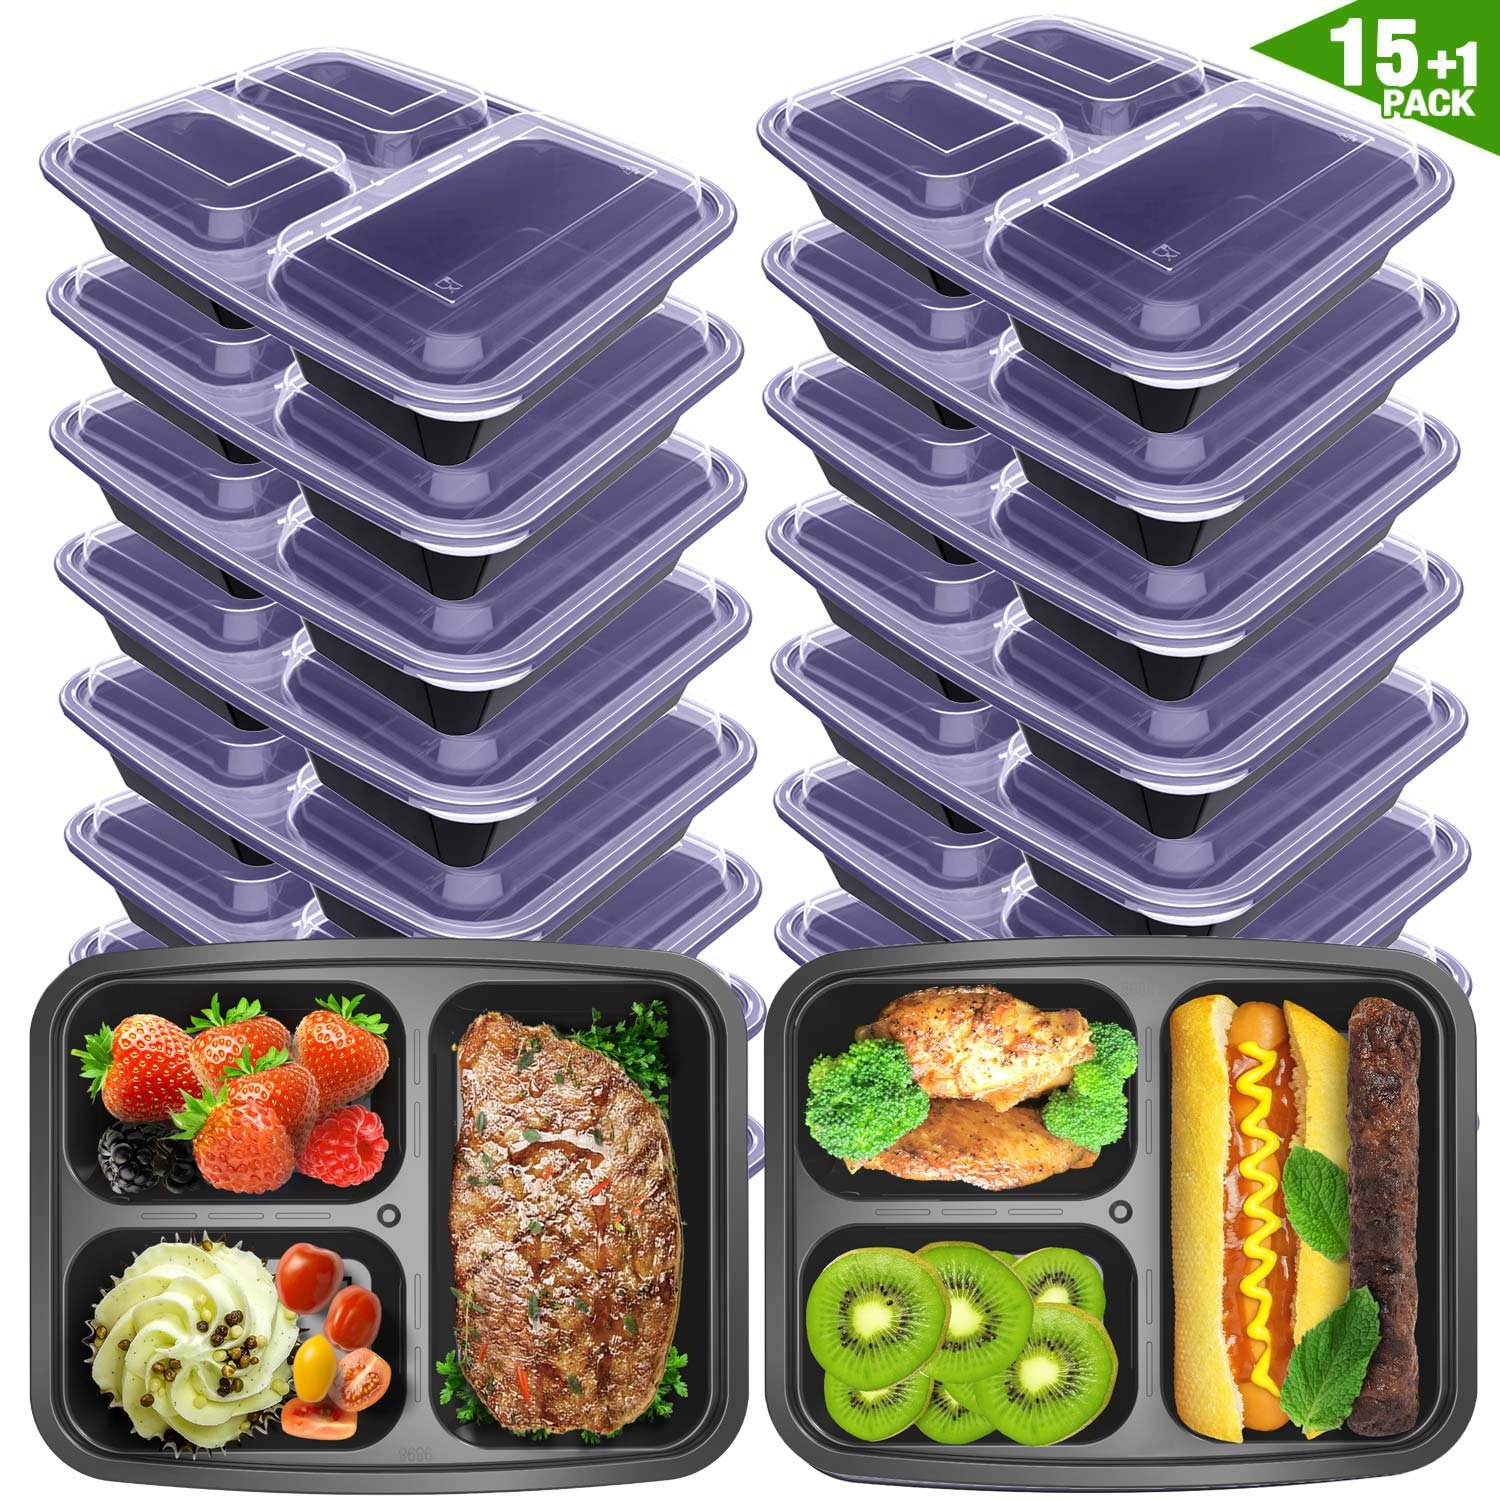 Meal Prep Containers 3 Compartment with Lids BPA Free Food Storage Bento Style Lunch Boxes for Portion Control ,Microwaveable /Reusable /Freezer & Dishwasher Safe 16 Pack[15+1 ] 36 oz